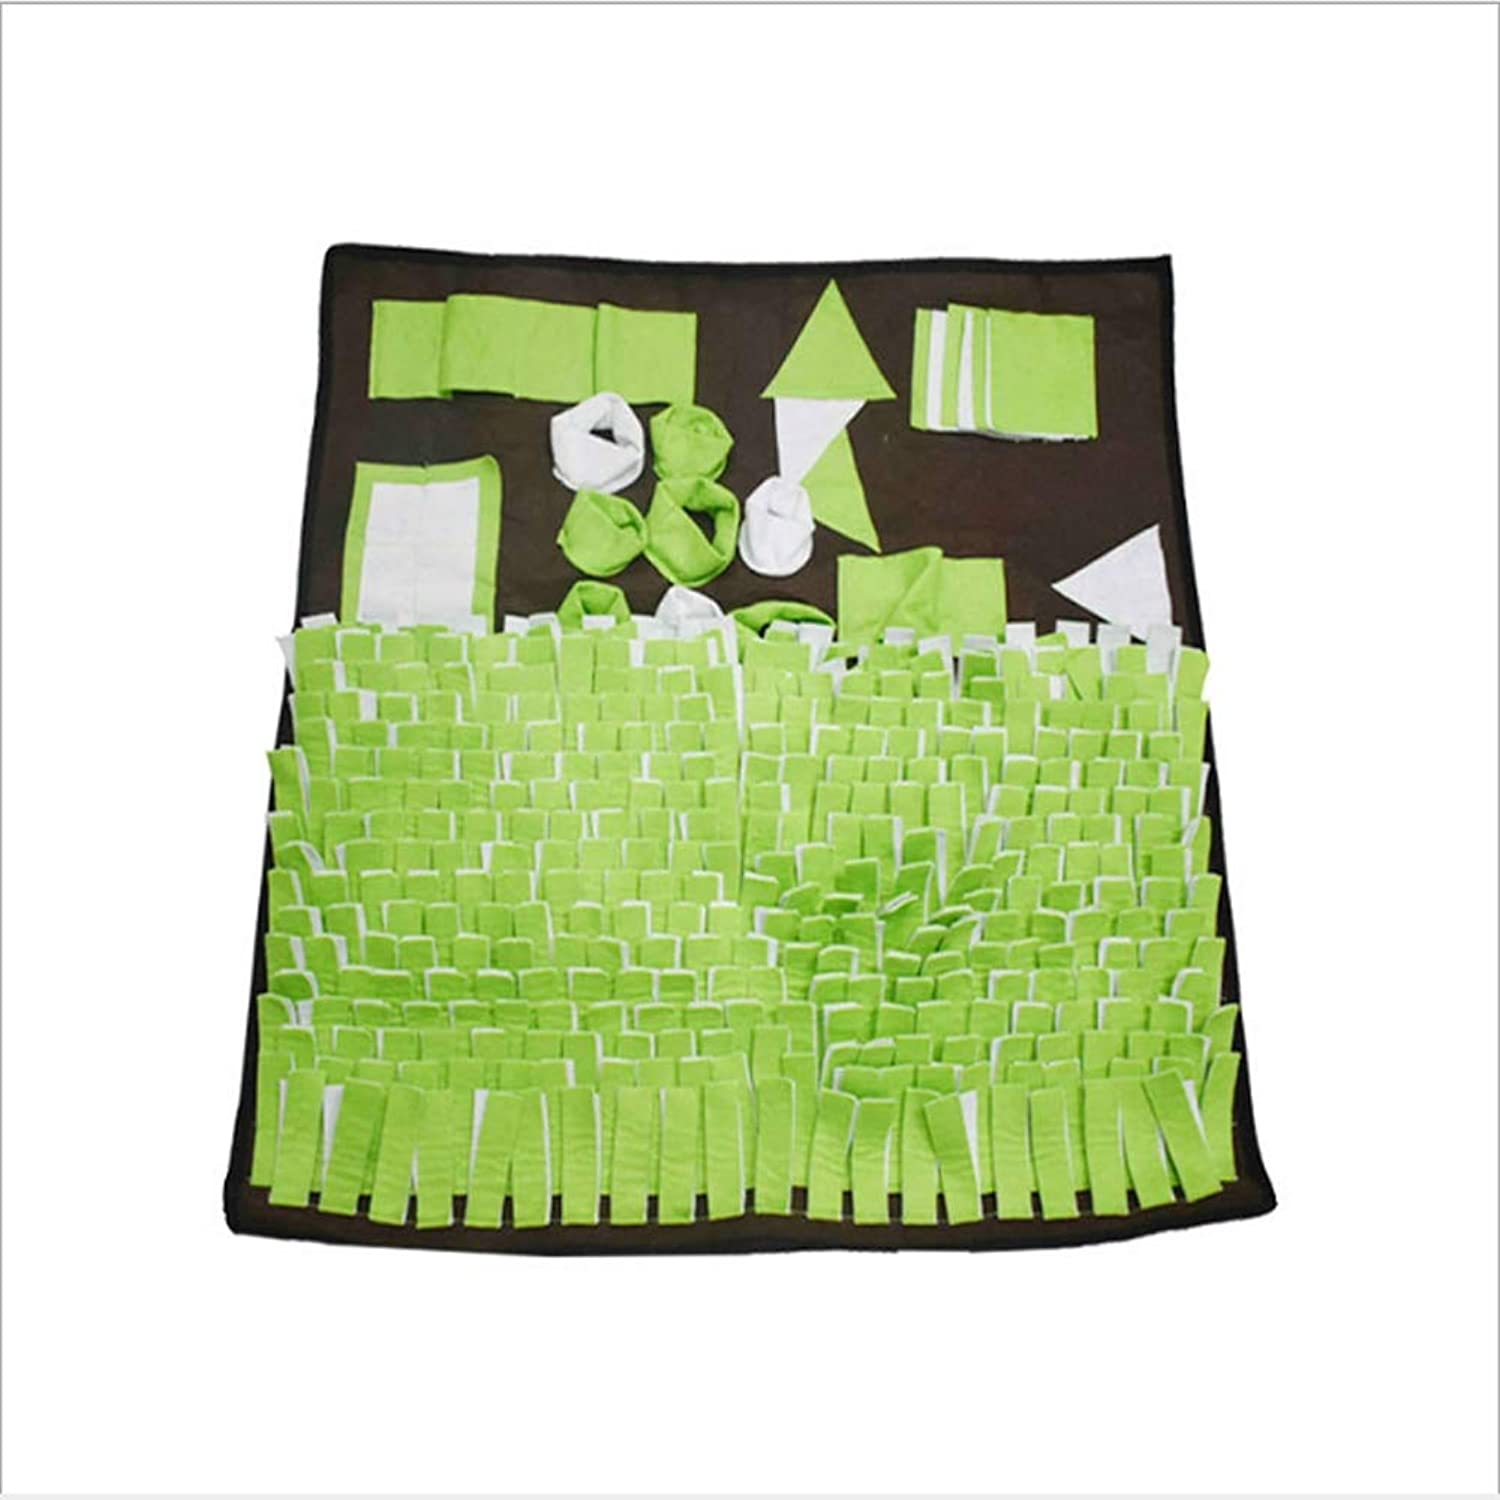 Scriqq Snuffle Mat for Dogs Small Dog Toys Coniglio Trects Activity Toy Food Puppy Training Pads,Green,80 * 80cm